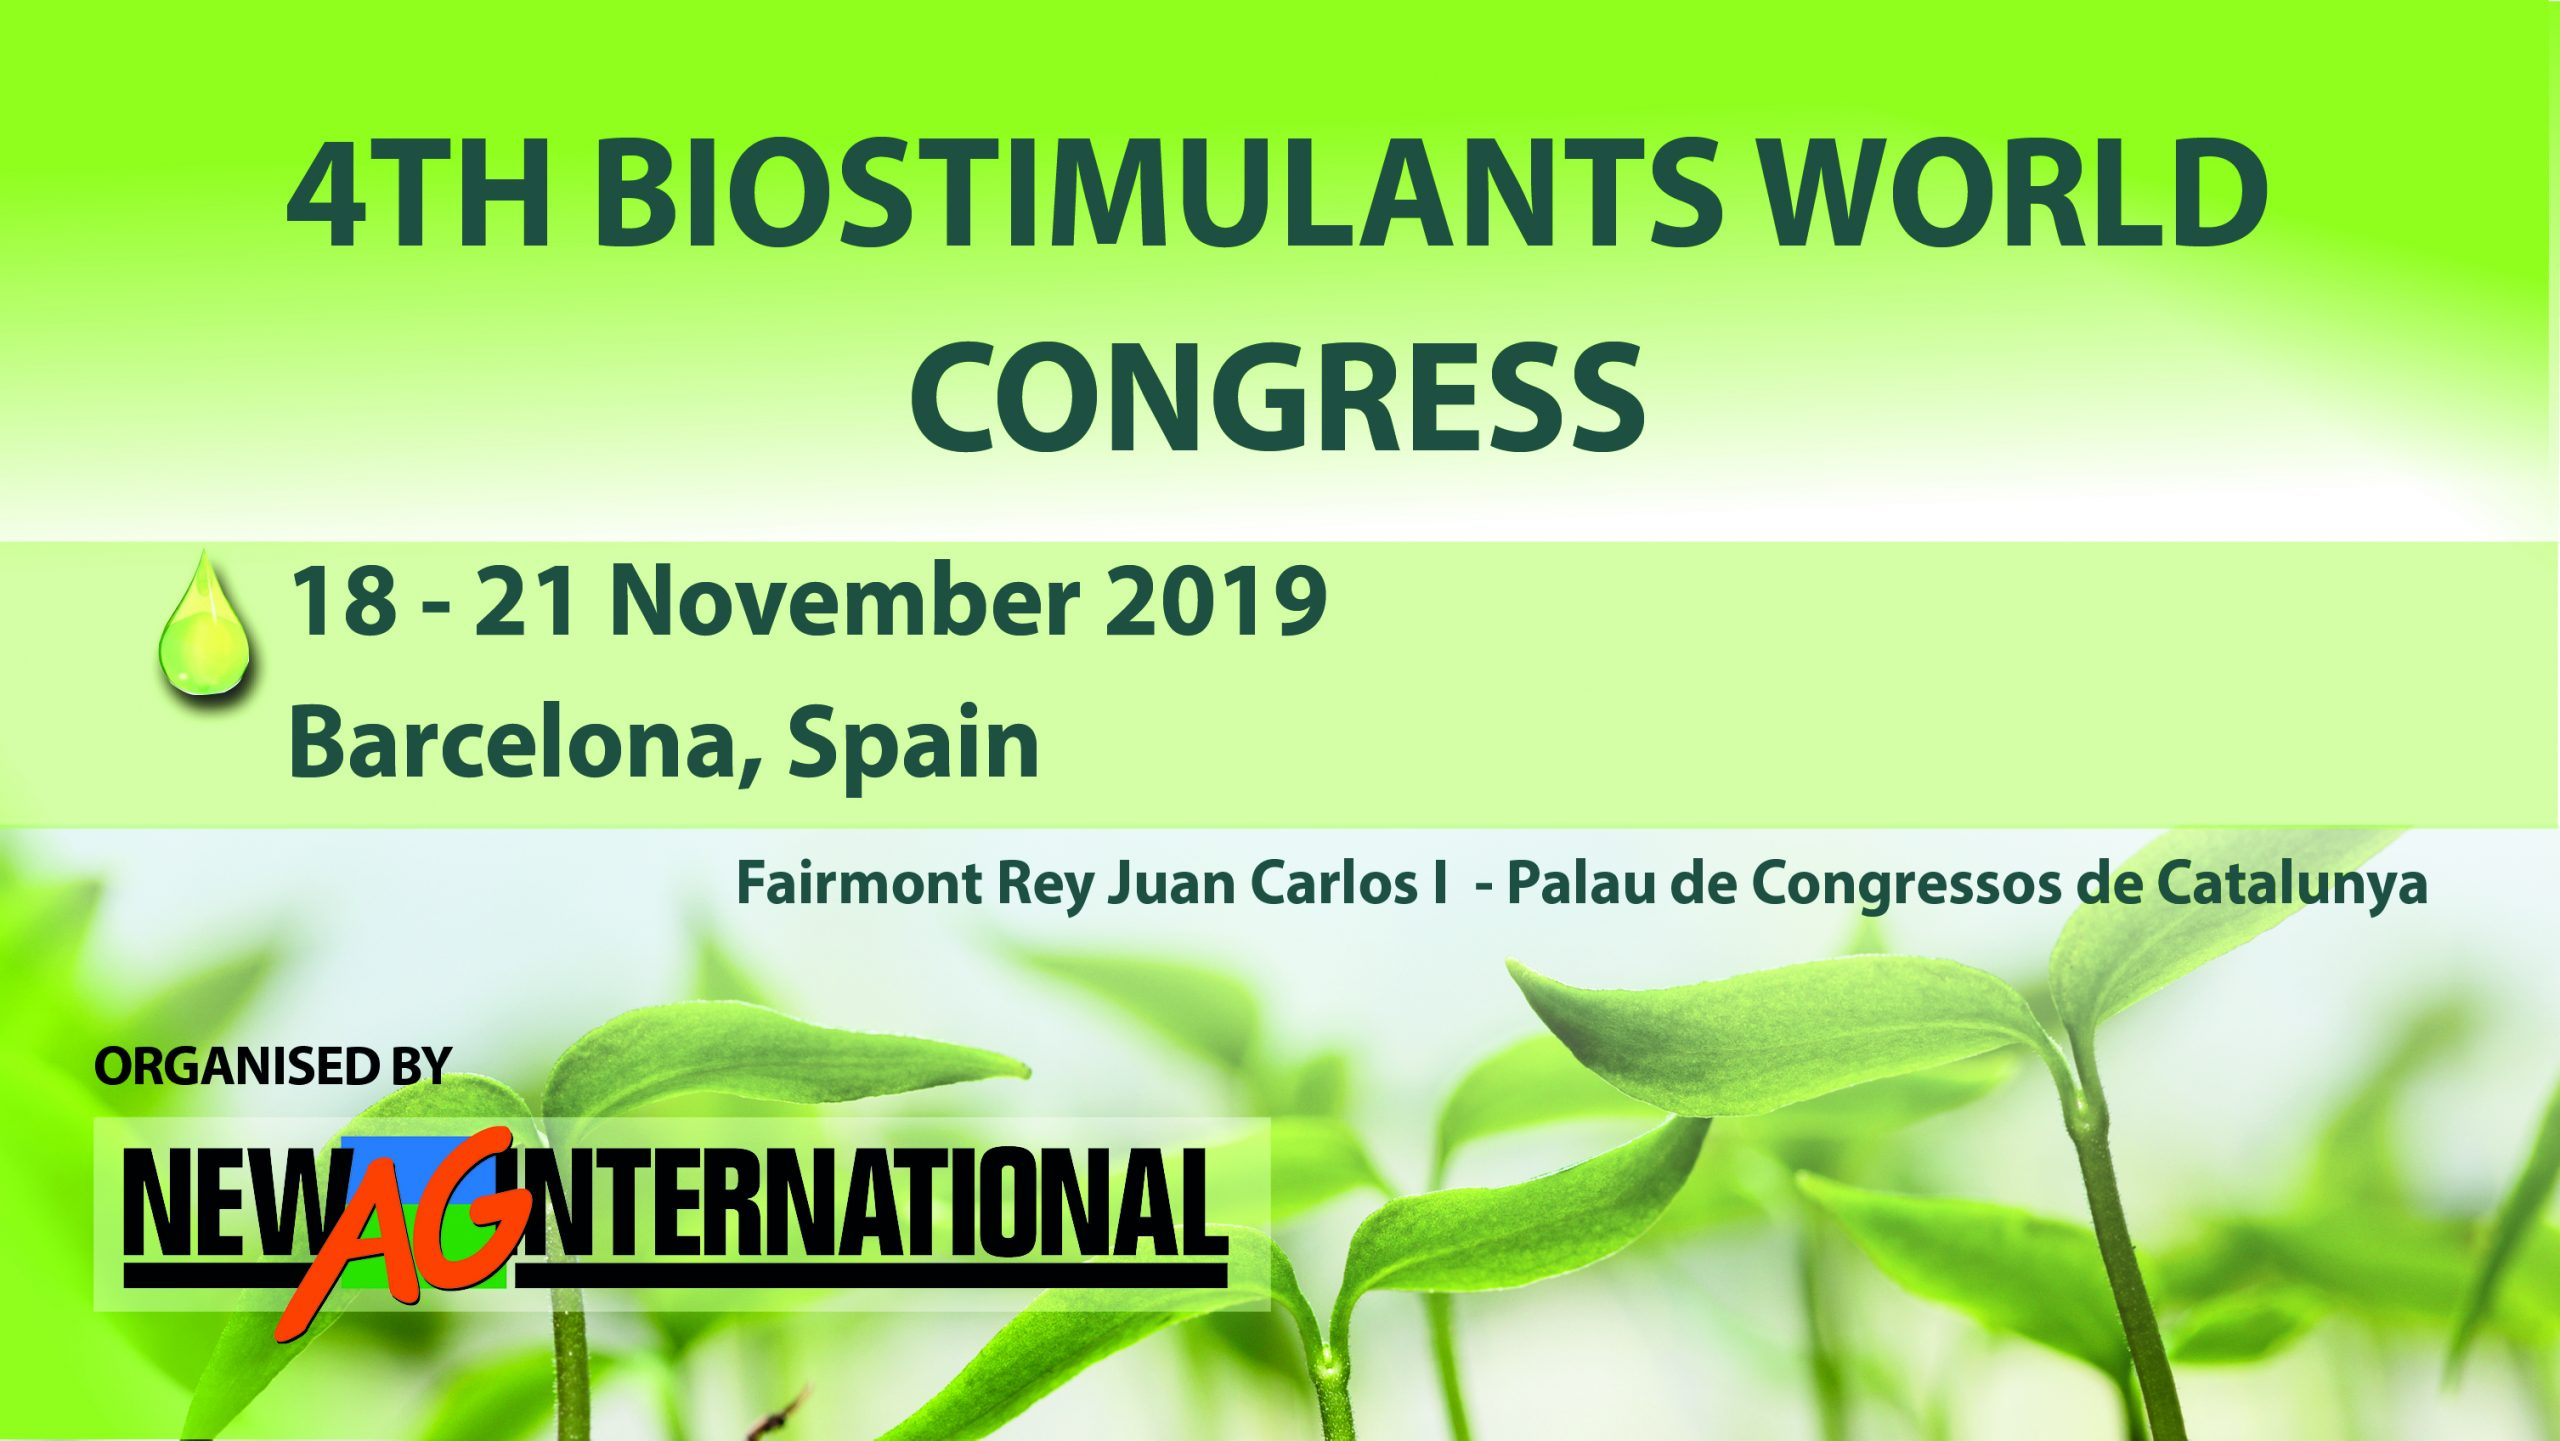 4TH BIOSTIMULANTS WORLD CONGRESS